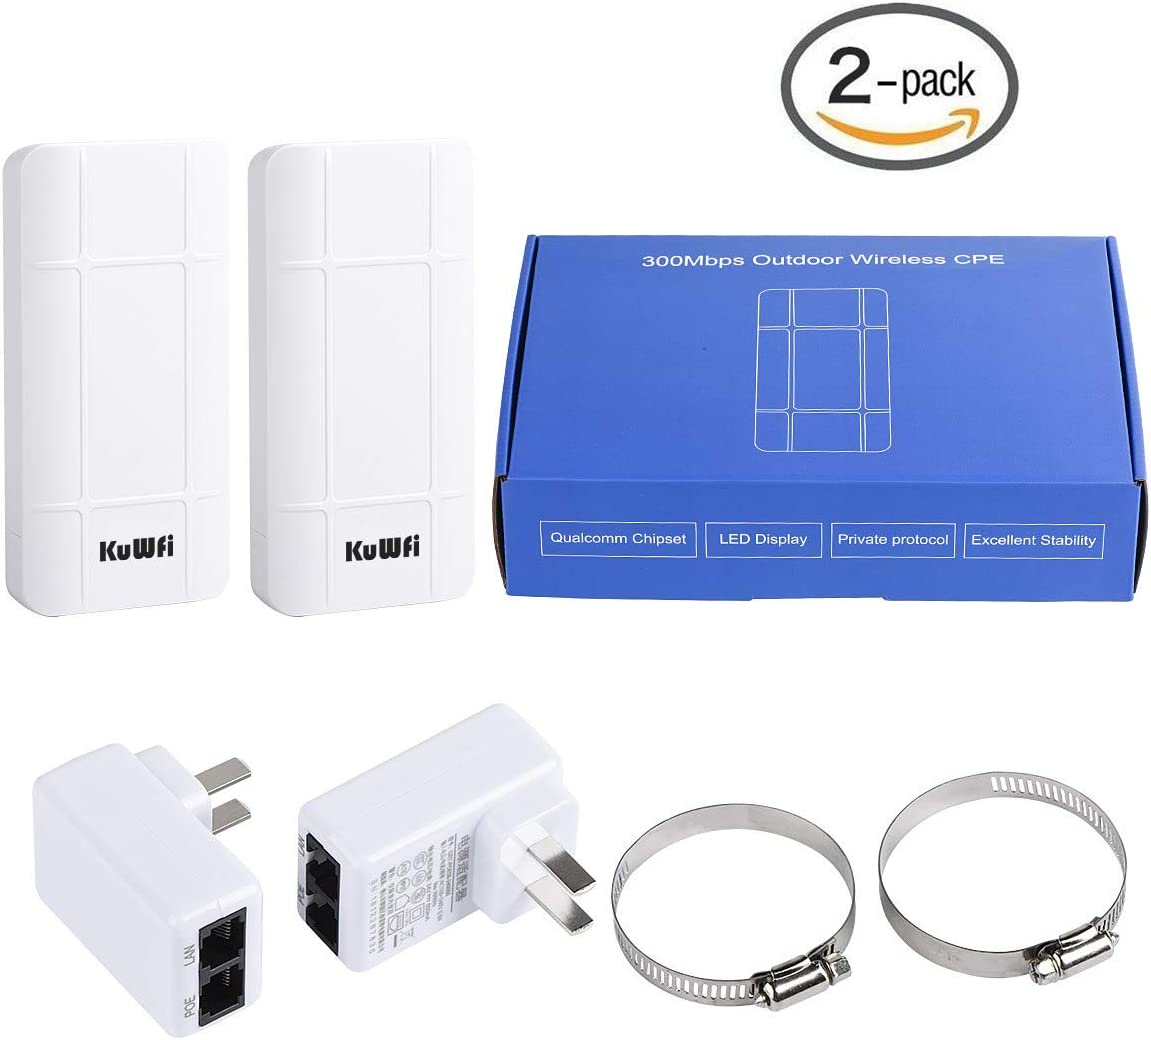 Portable Wireless WiFi Router Waterproof Easy Setup Point to Point 1 KM Long Distance Transmission Wireless Bridge Kit for PC//Laptop